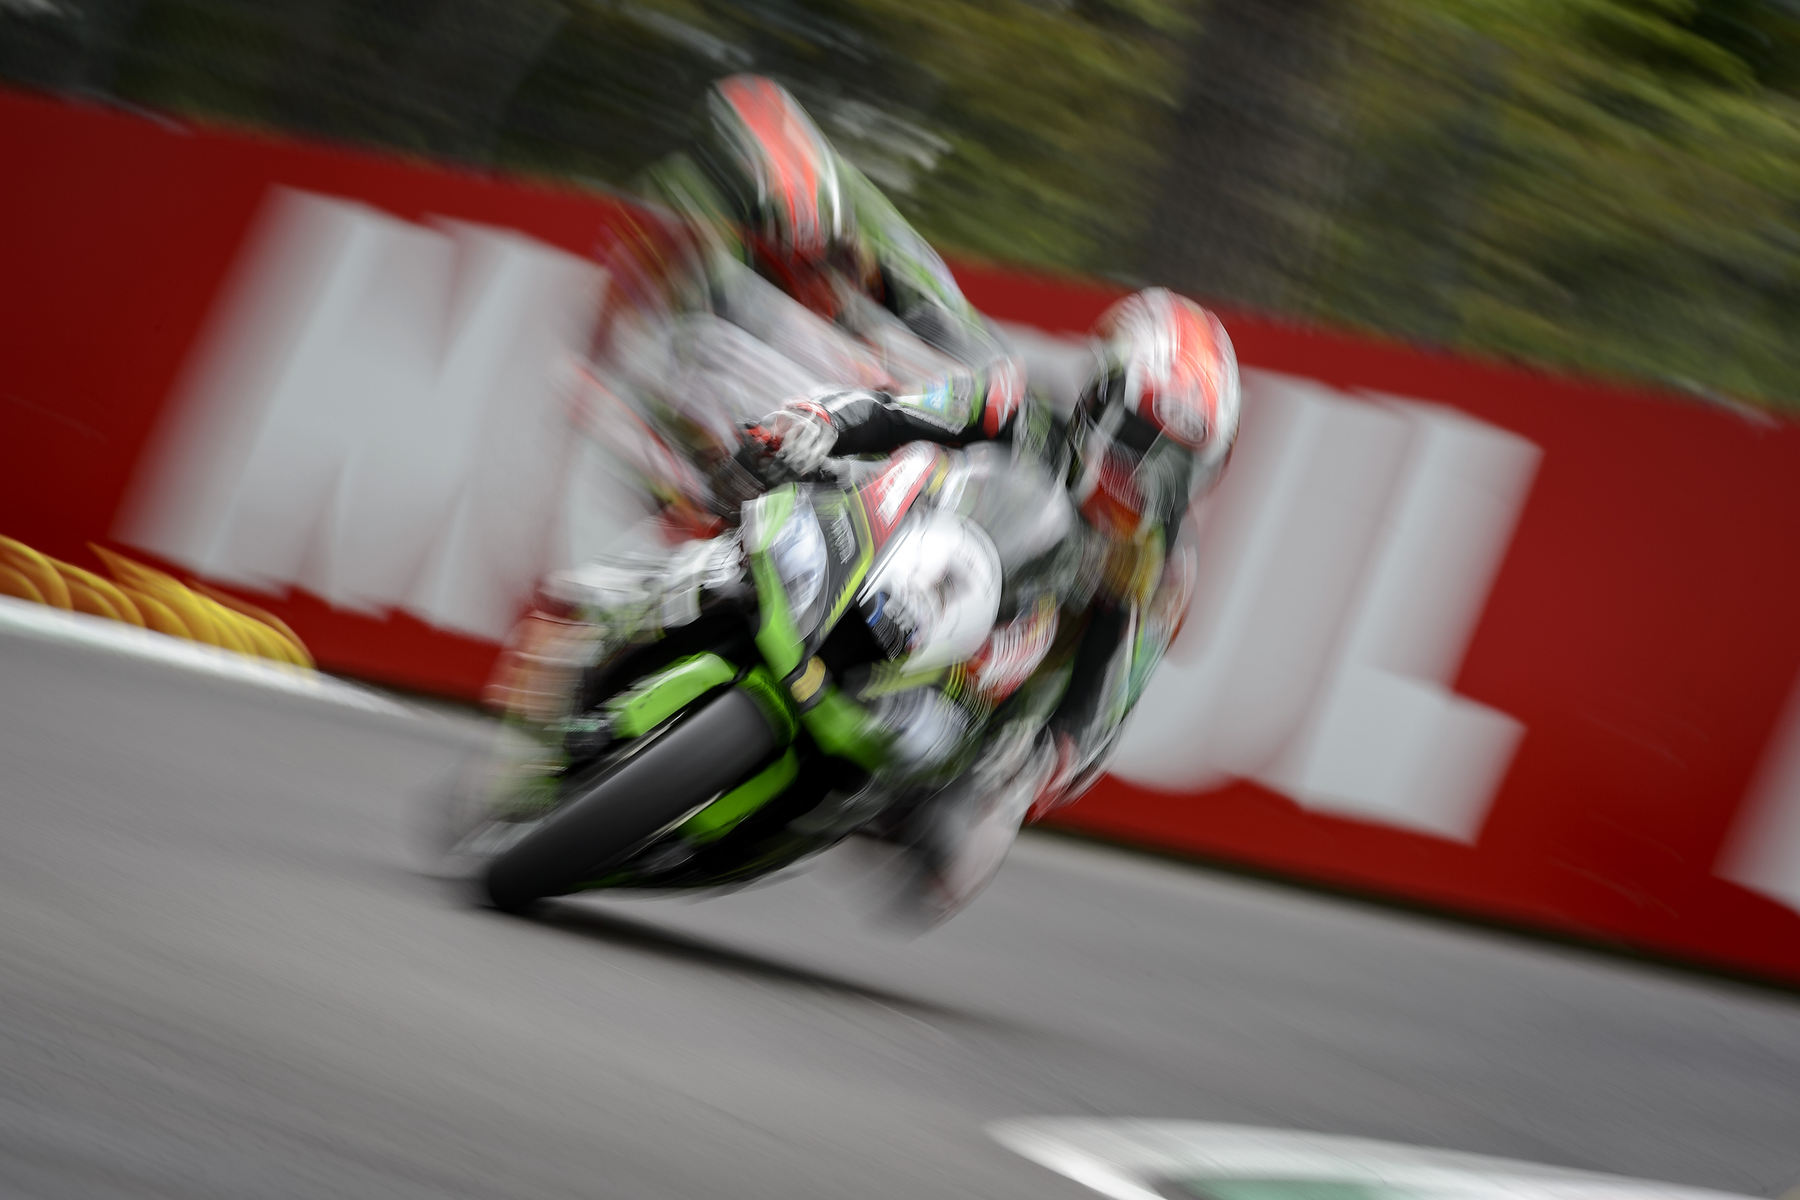 031_R05_Imola_gallery